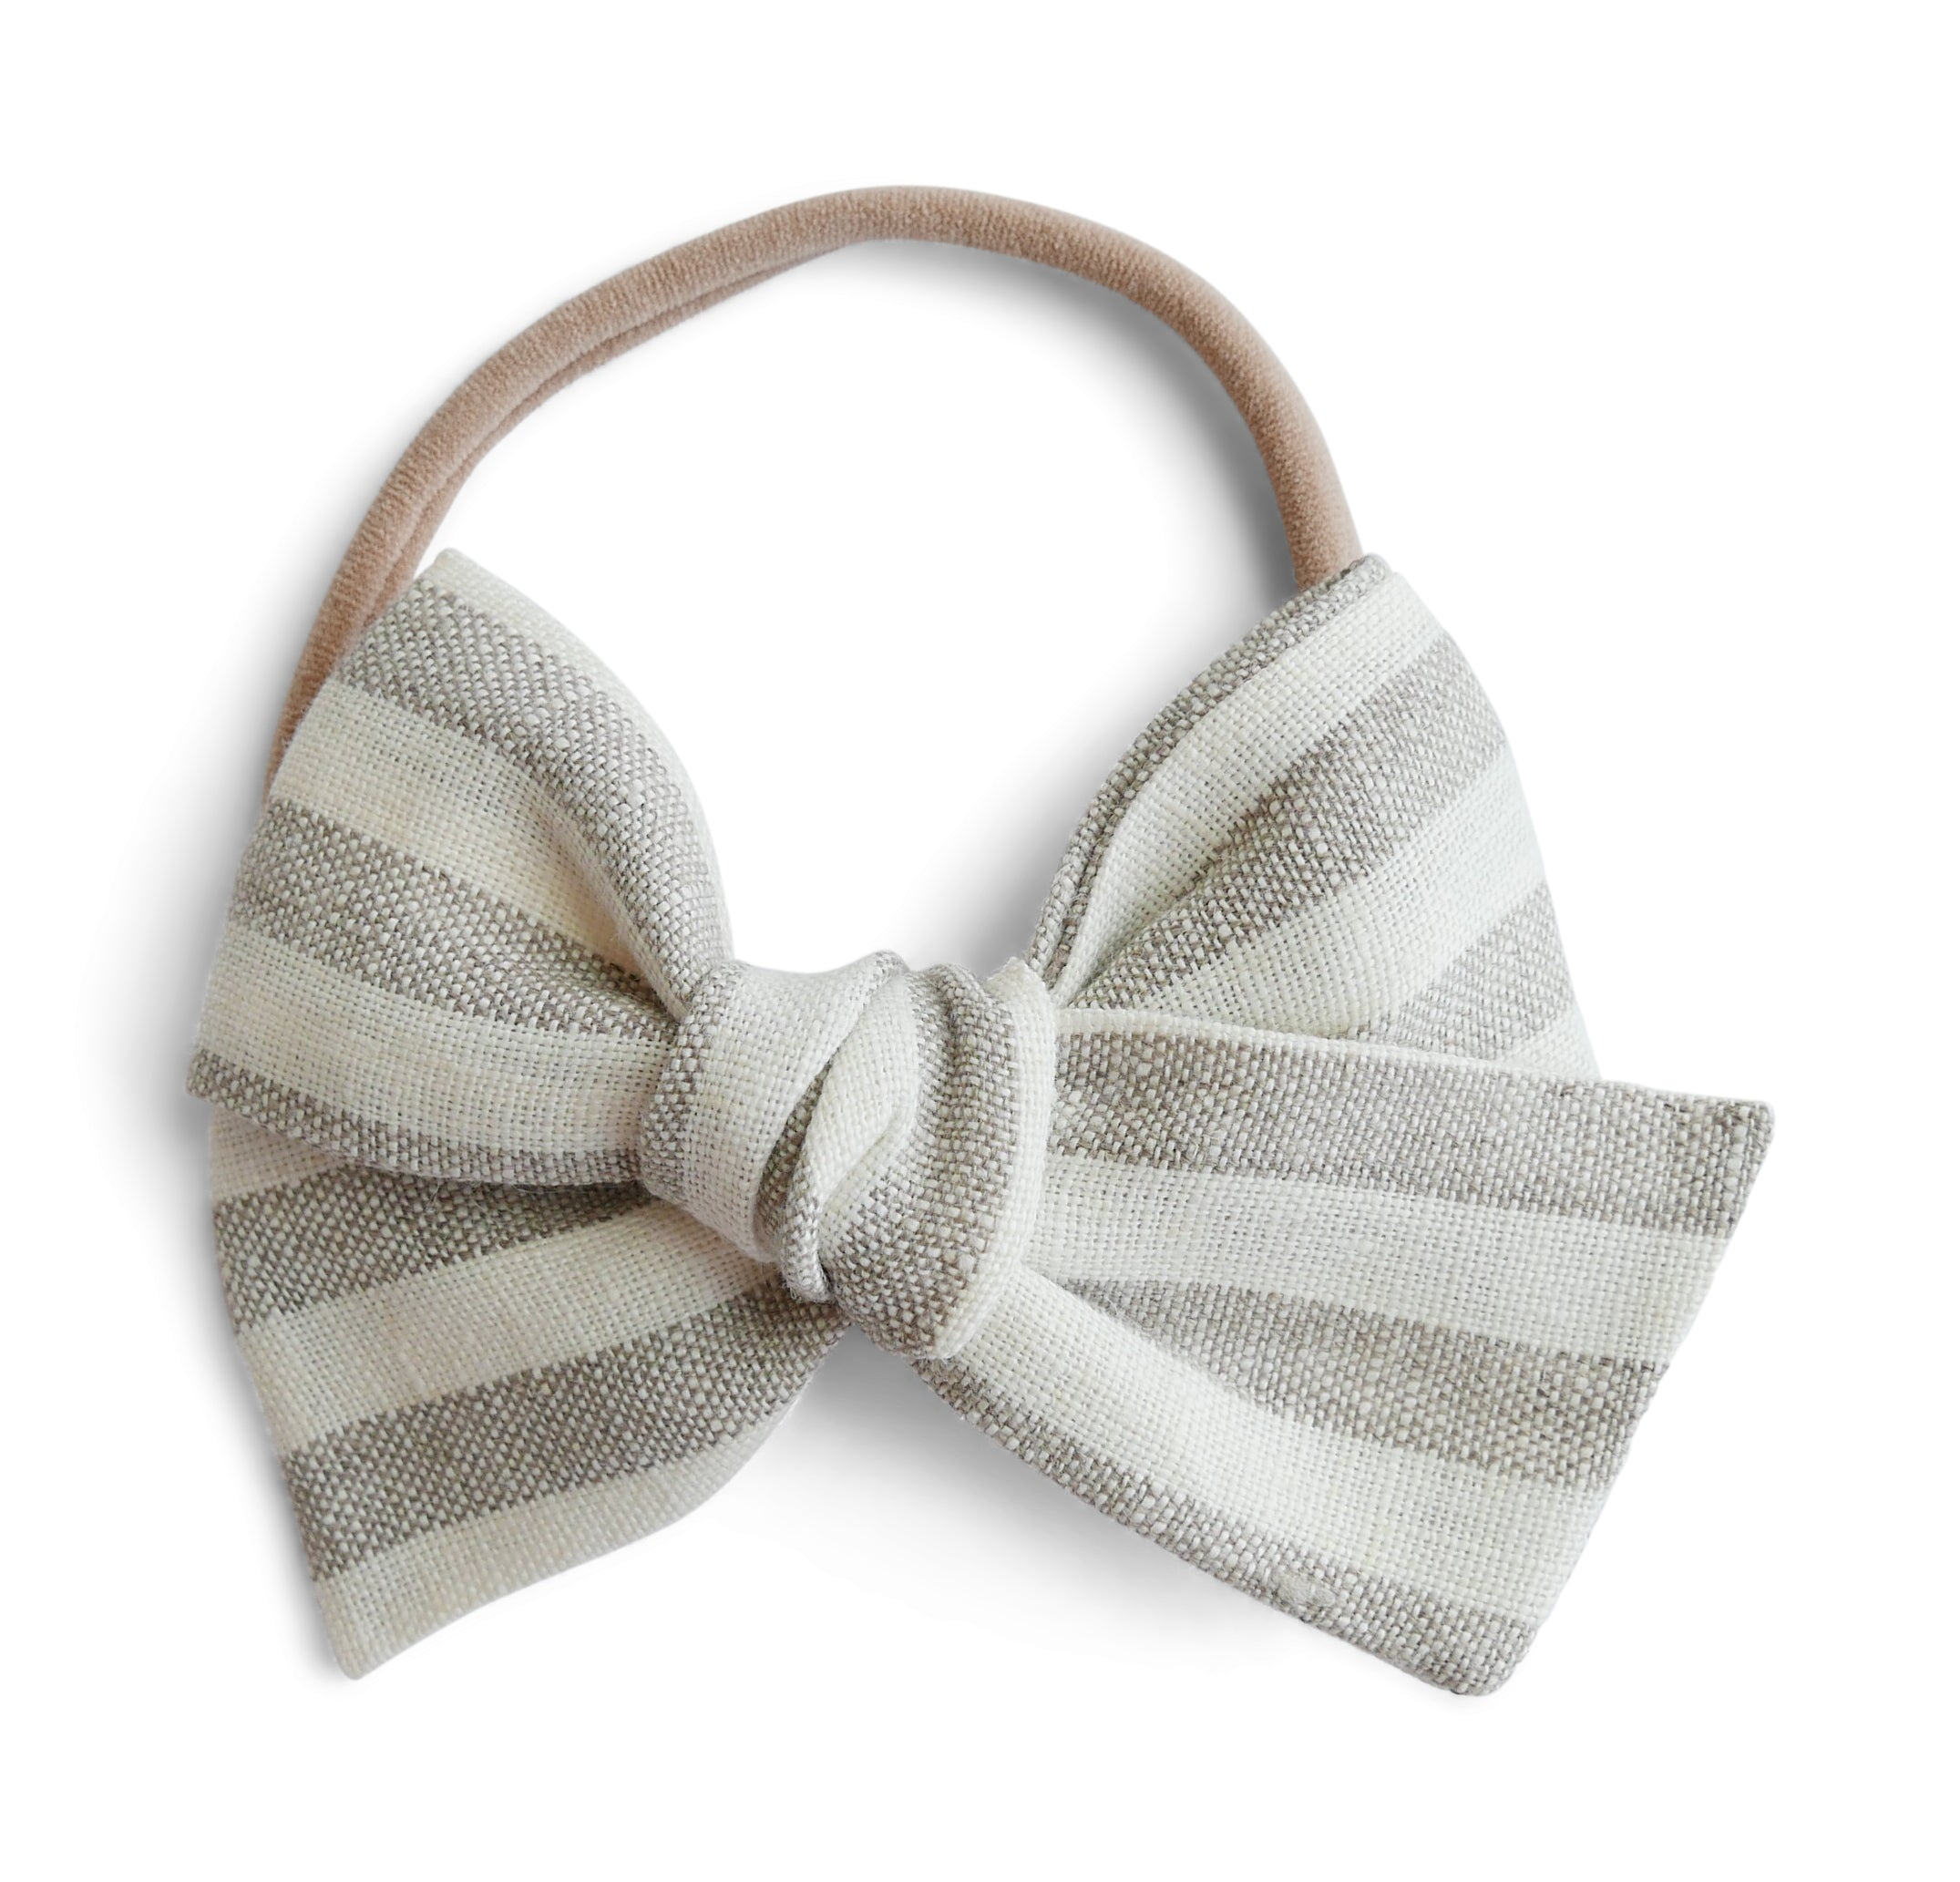 Flax Stripe Linen - Big Mess Bow